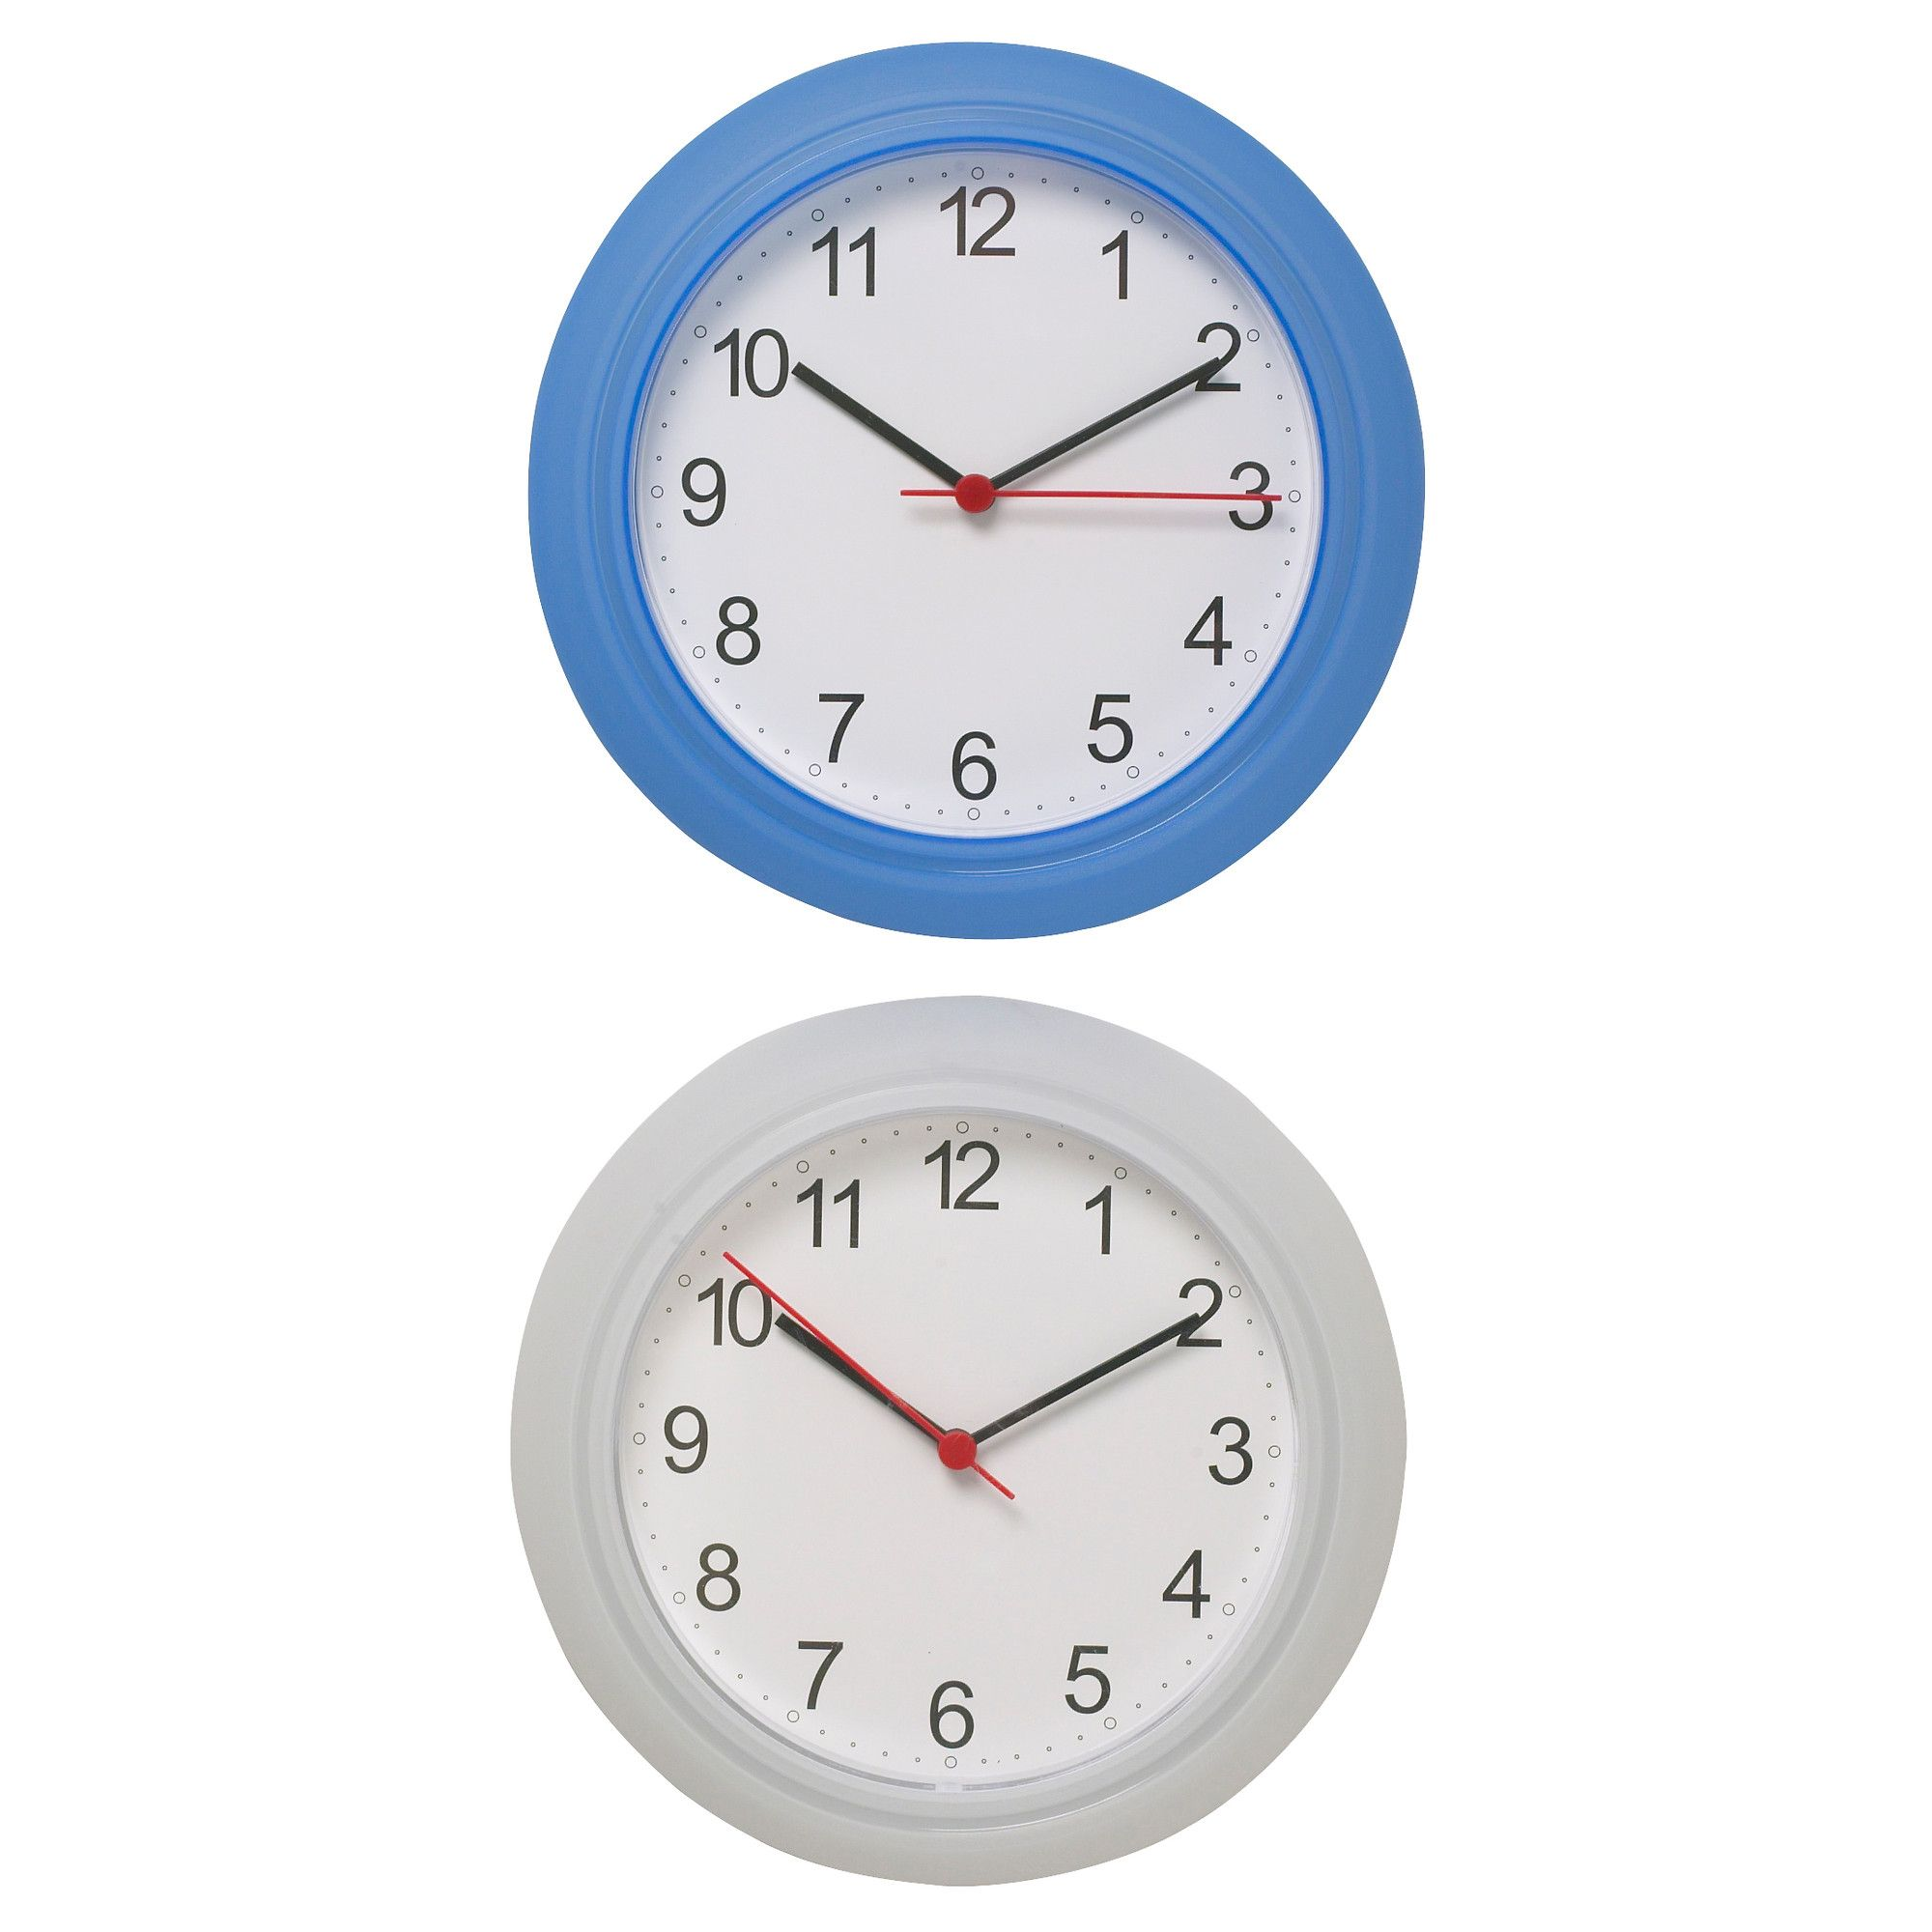 Rusch wall clock white wall clocks clocks and college apartments rusch wall clock white amipublicfo Image collections